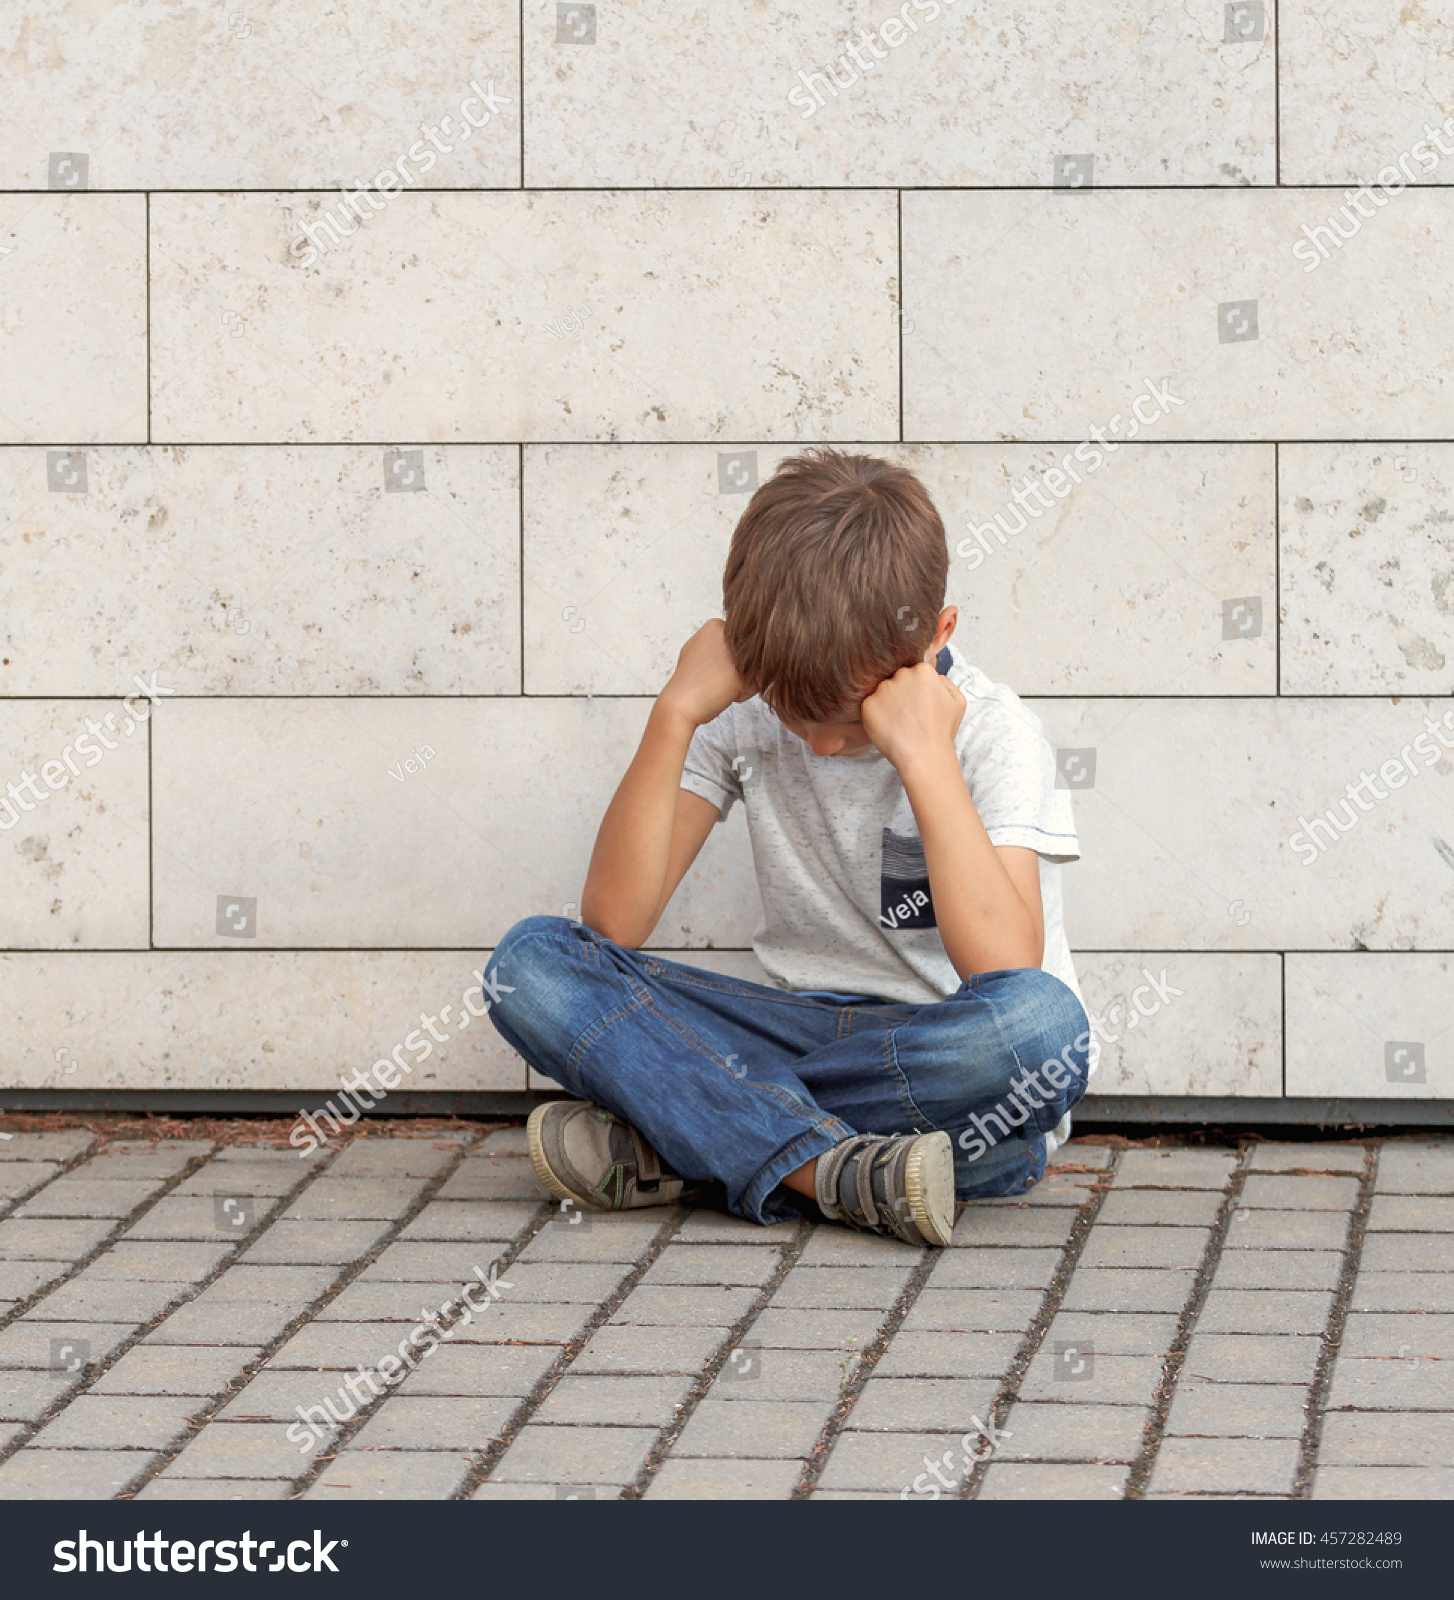 Sad Boy Alone Quotes: Sad Lonely Unhappy Disappointed Child Sitting Stock Photo